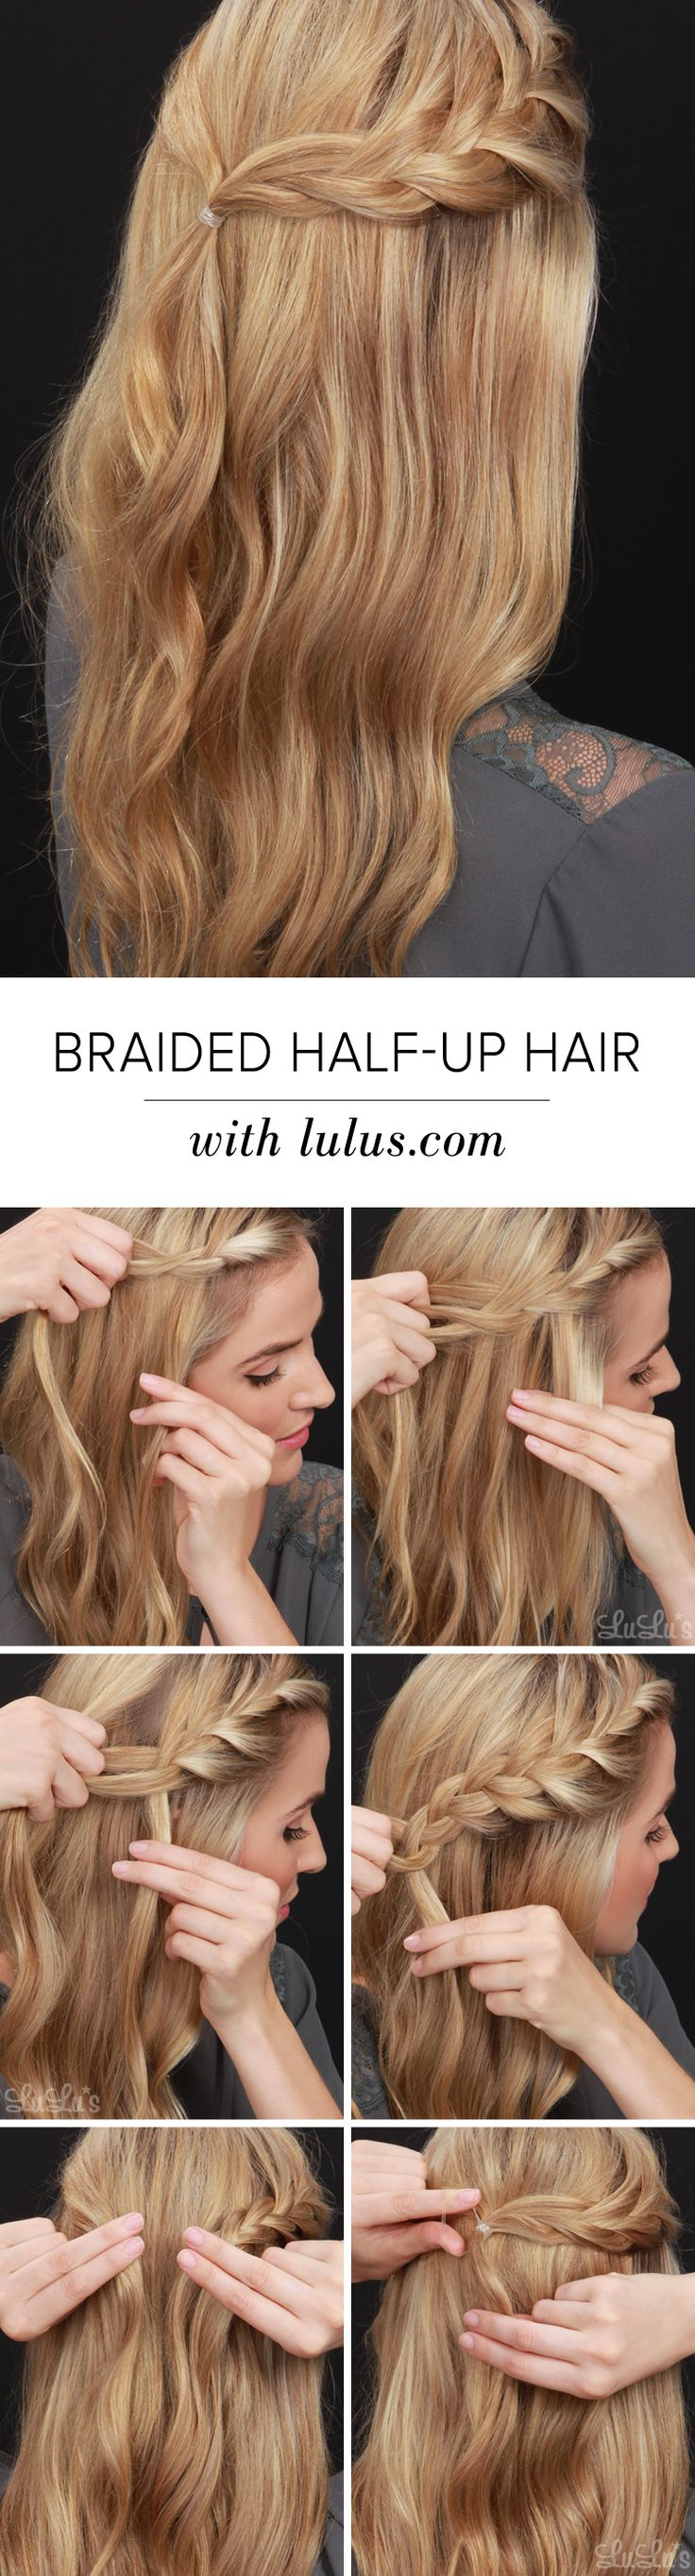 Great for a day at the office, date night, and every other occasion imaginable, our Half-Up Braided Hair Tutorial is so easy to